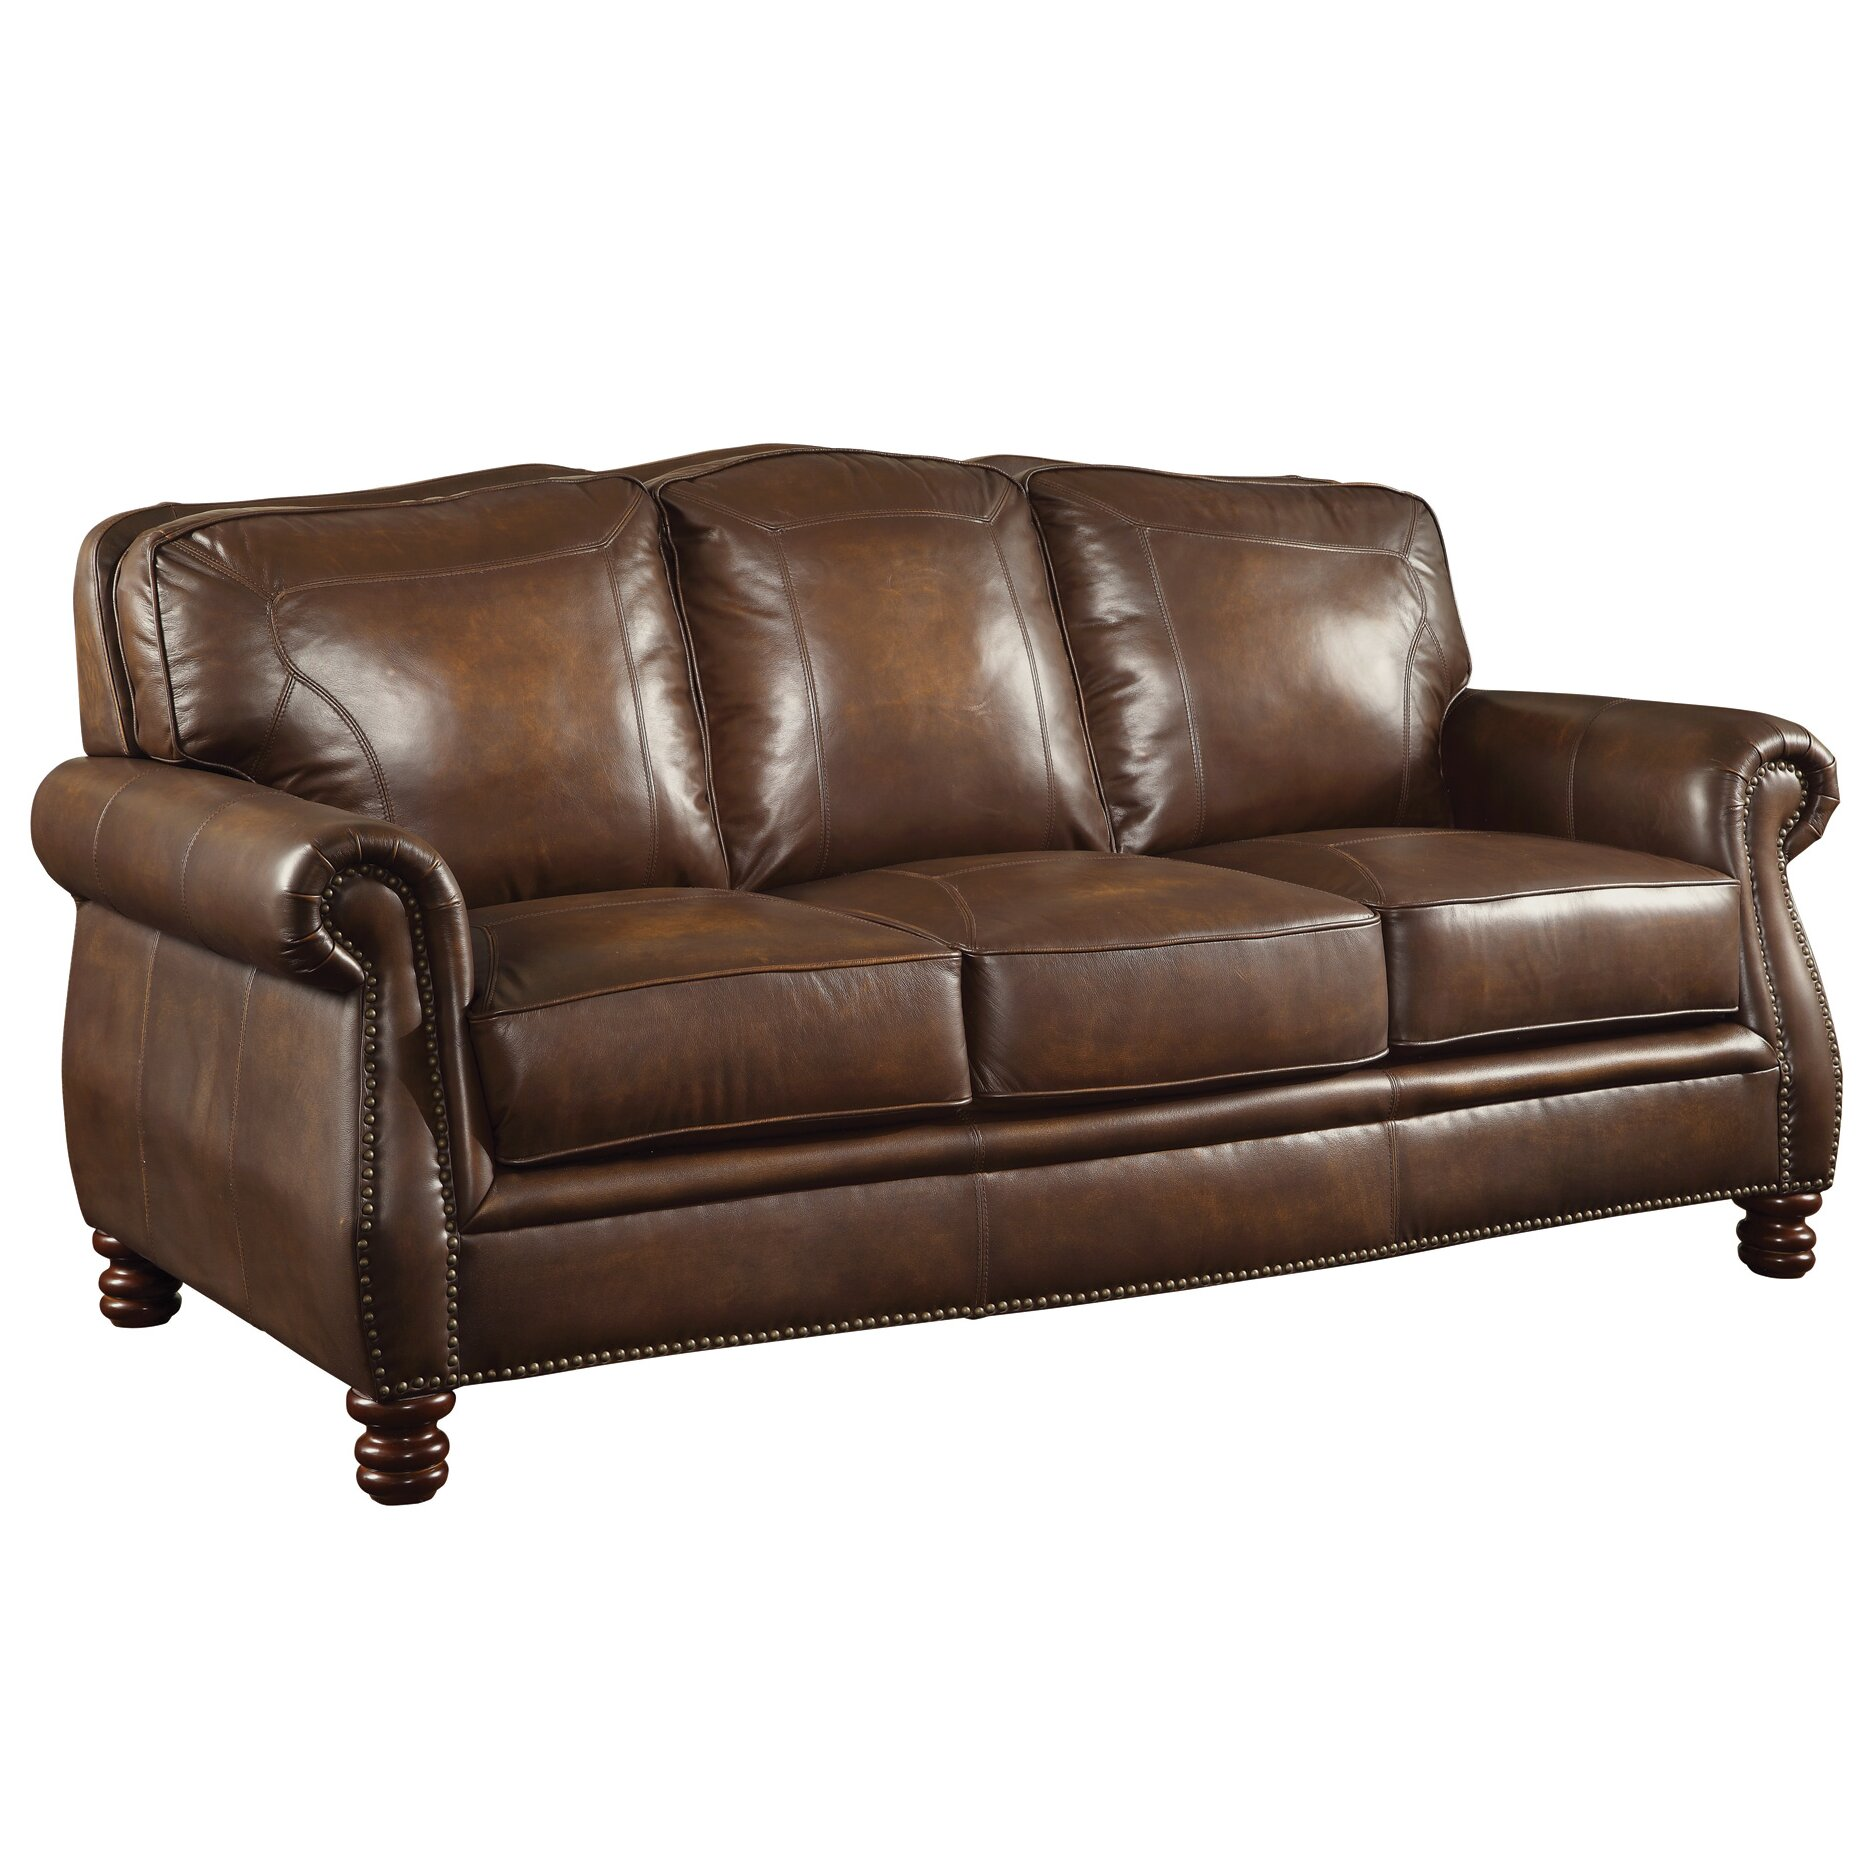 Reviews For Leather Sofas: Rosalind Wheeler Walborn Leather Sofa & Reviews